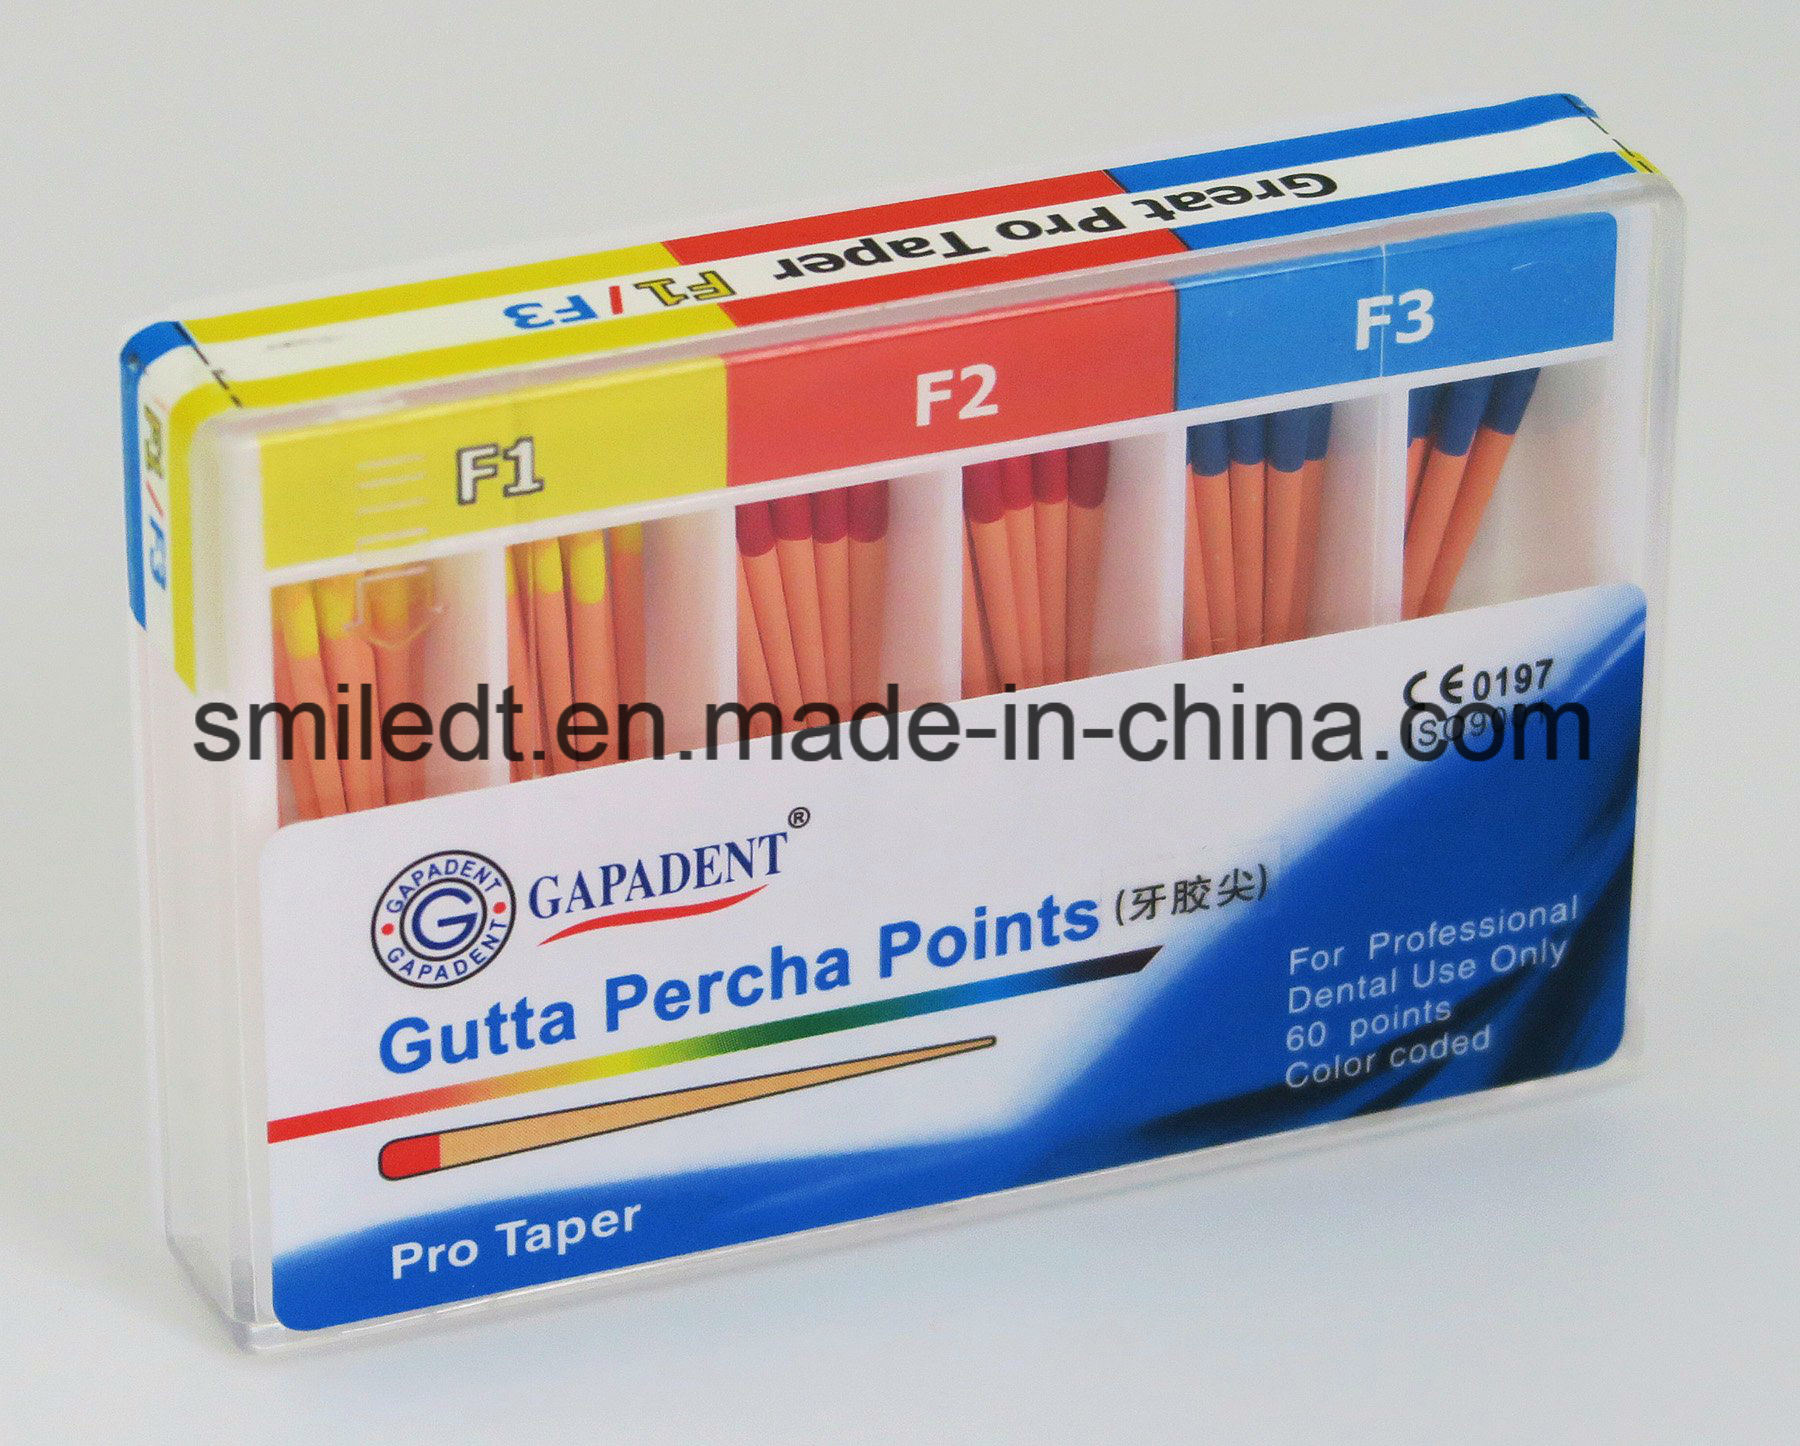 Gapa Protaper Gutta Percha Points